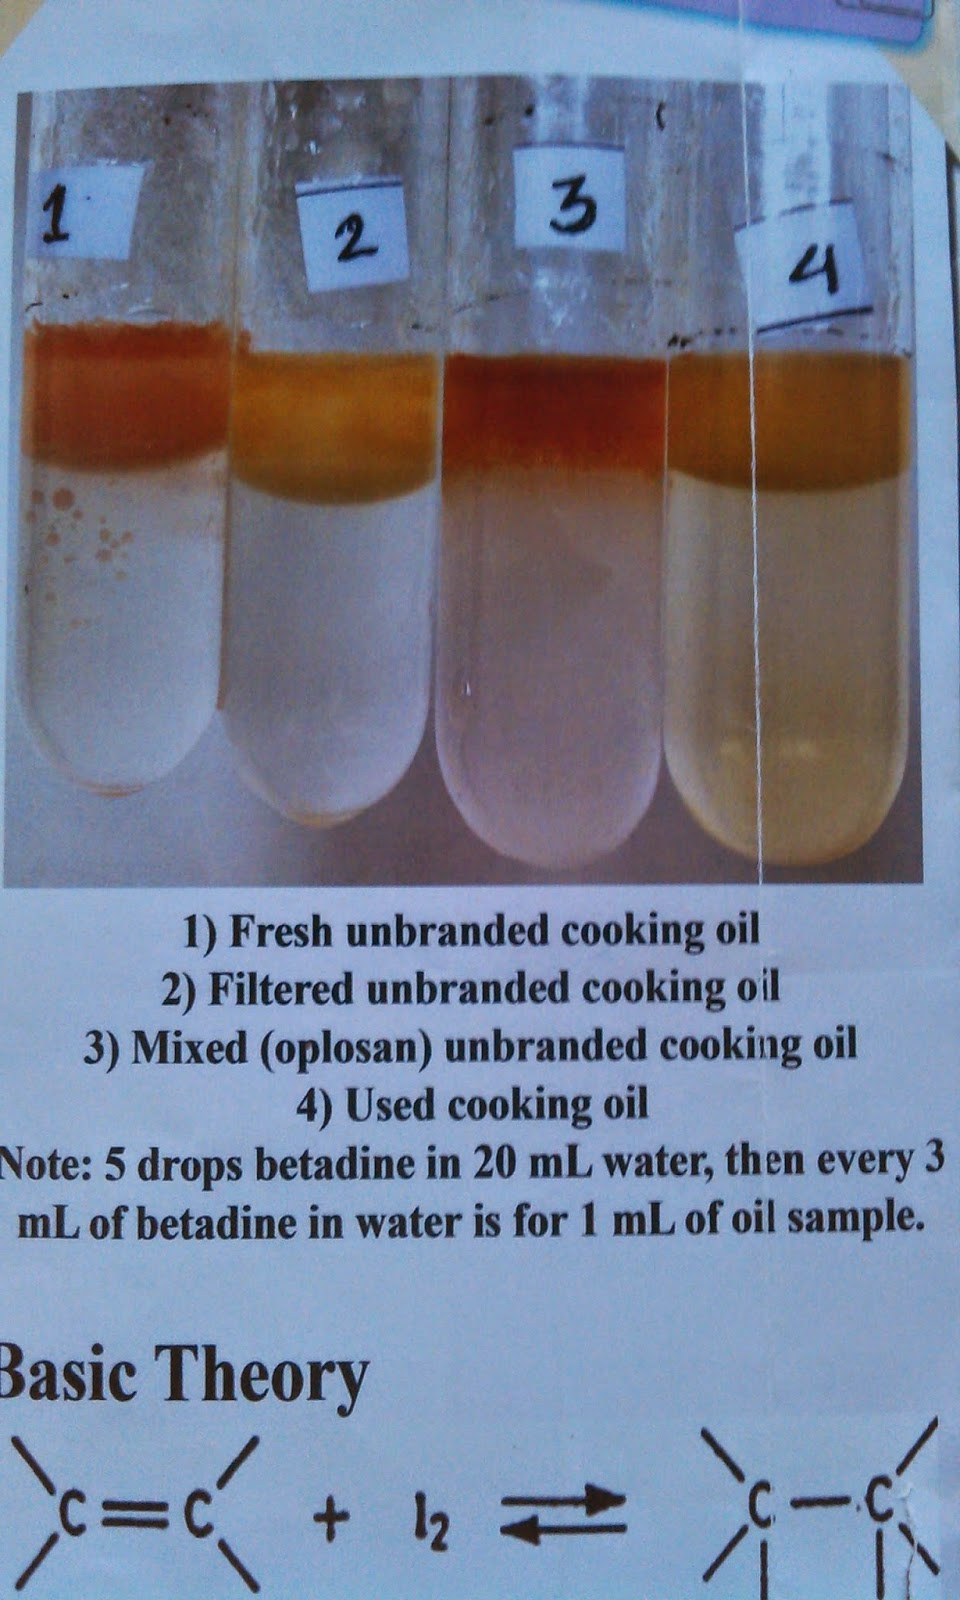 How Simple Distinguished Cooking Oil Bulk, Mixed, Results And Cooking Oil Filter With Original Branded Using Betadine